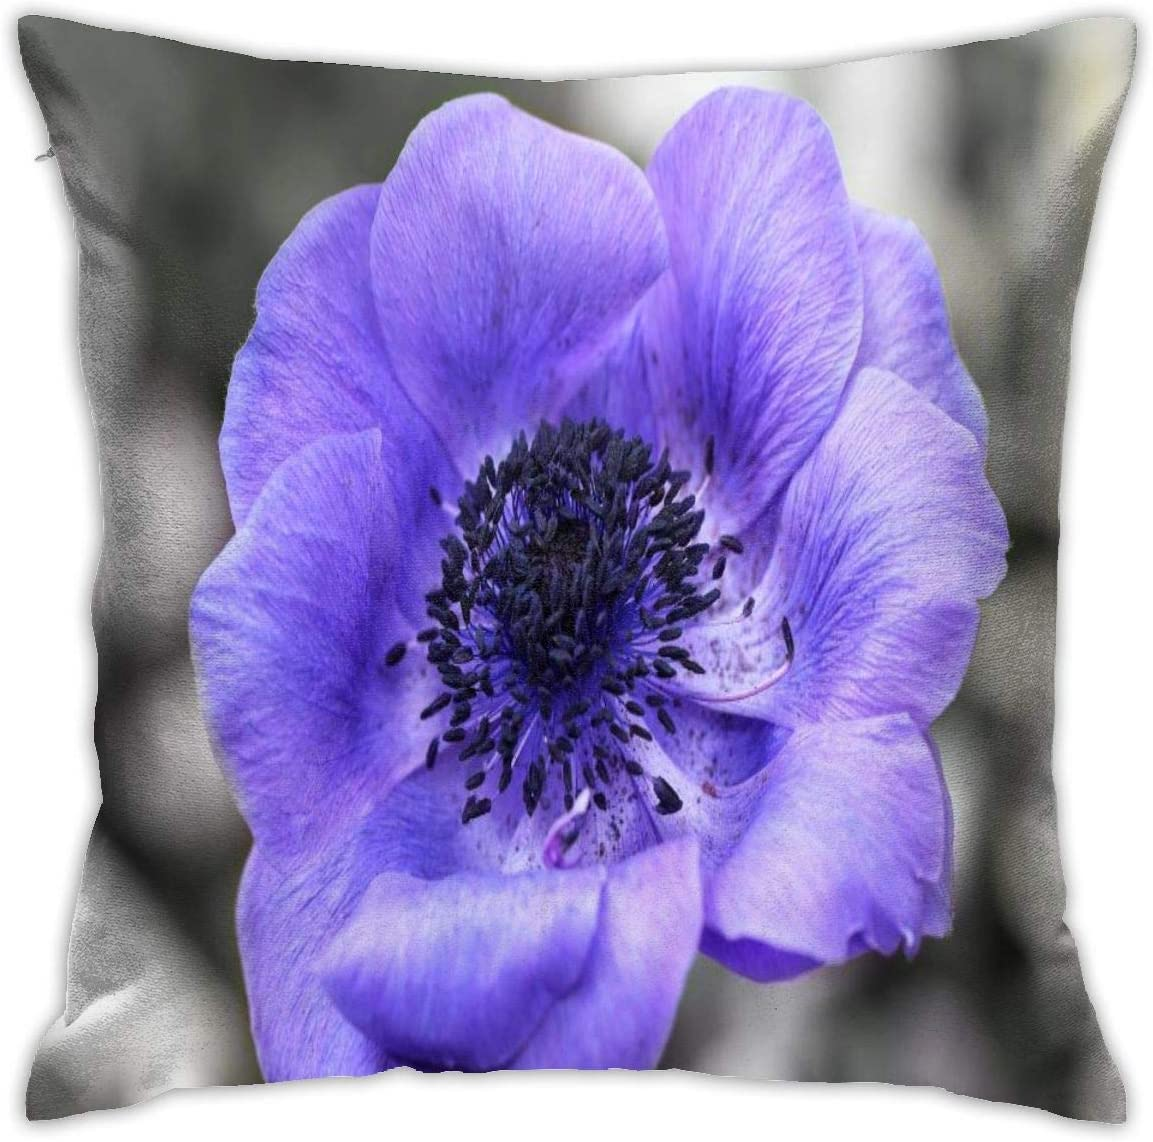 Kansas City Mall Macro Flower Violet Decorative Throw Zipp OFFicial mail order Pillow Cover Invisible